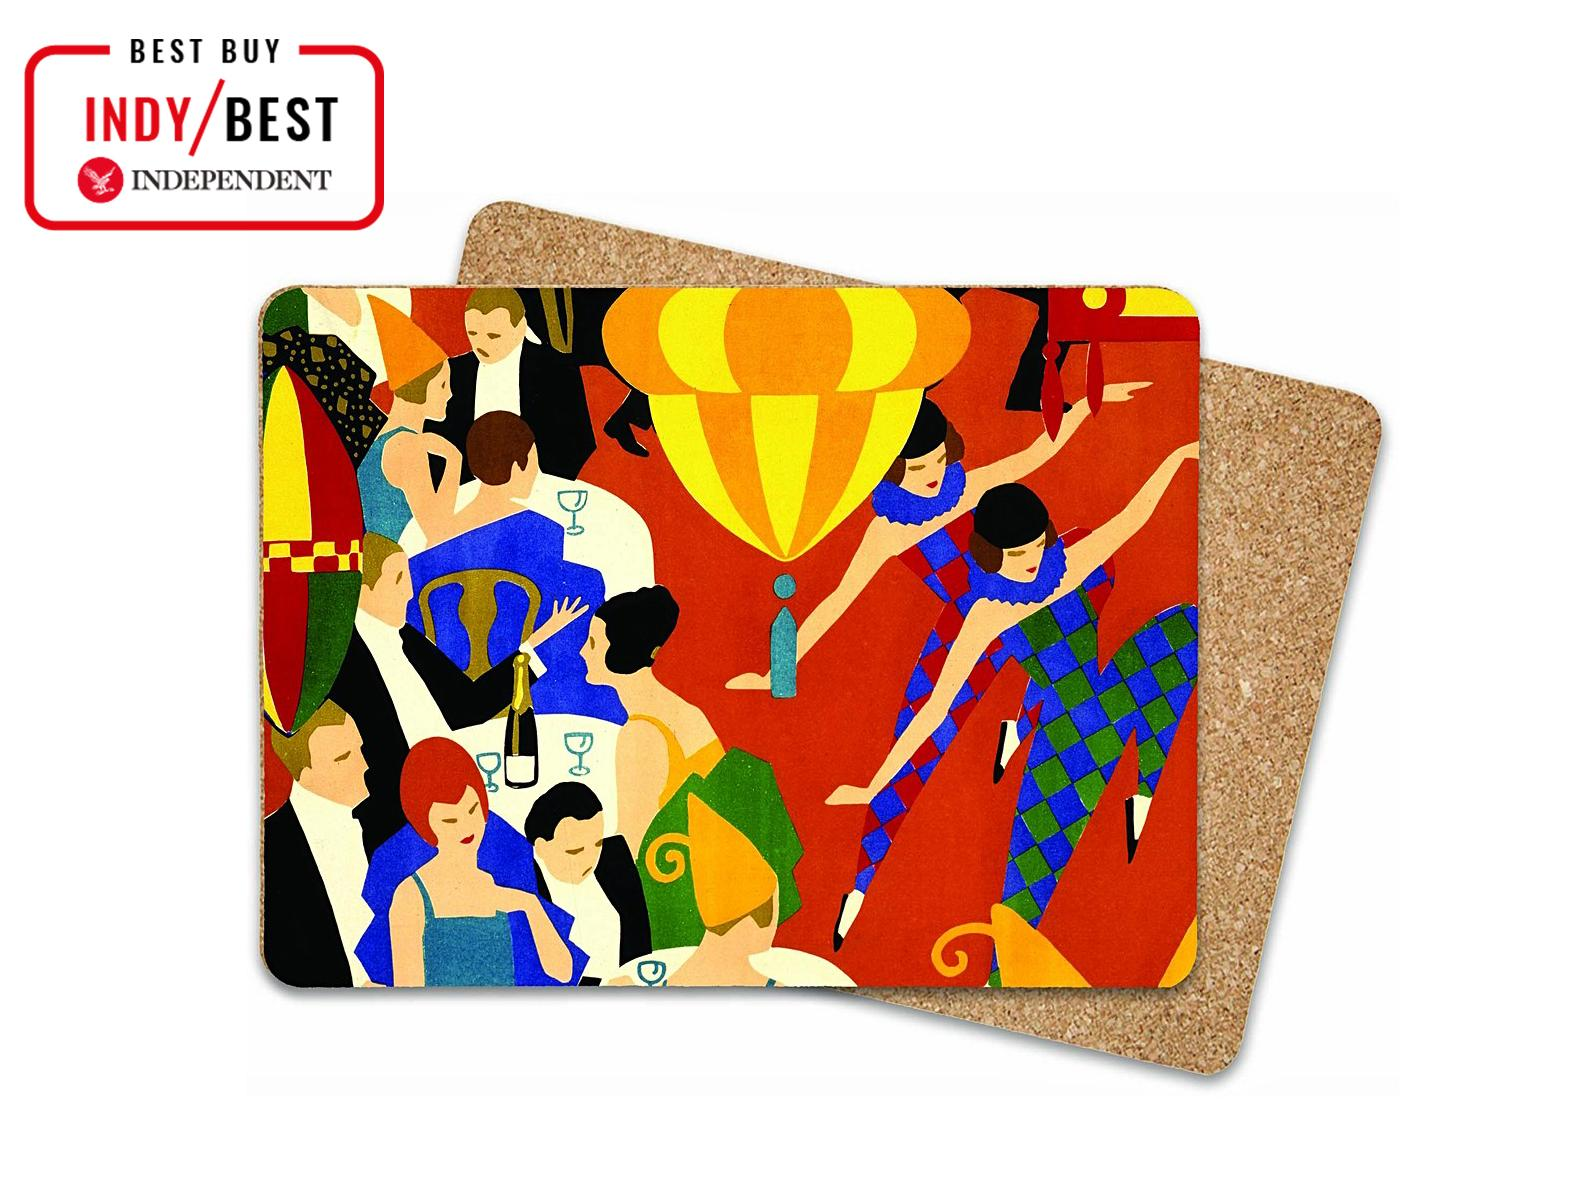 10 Best Placemats The Independent